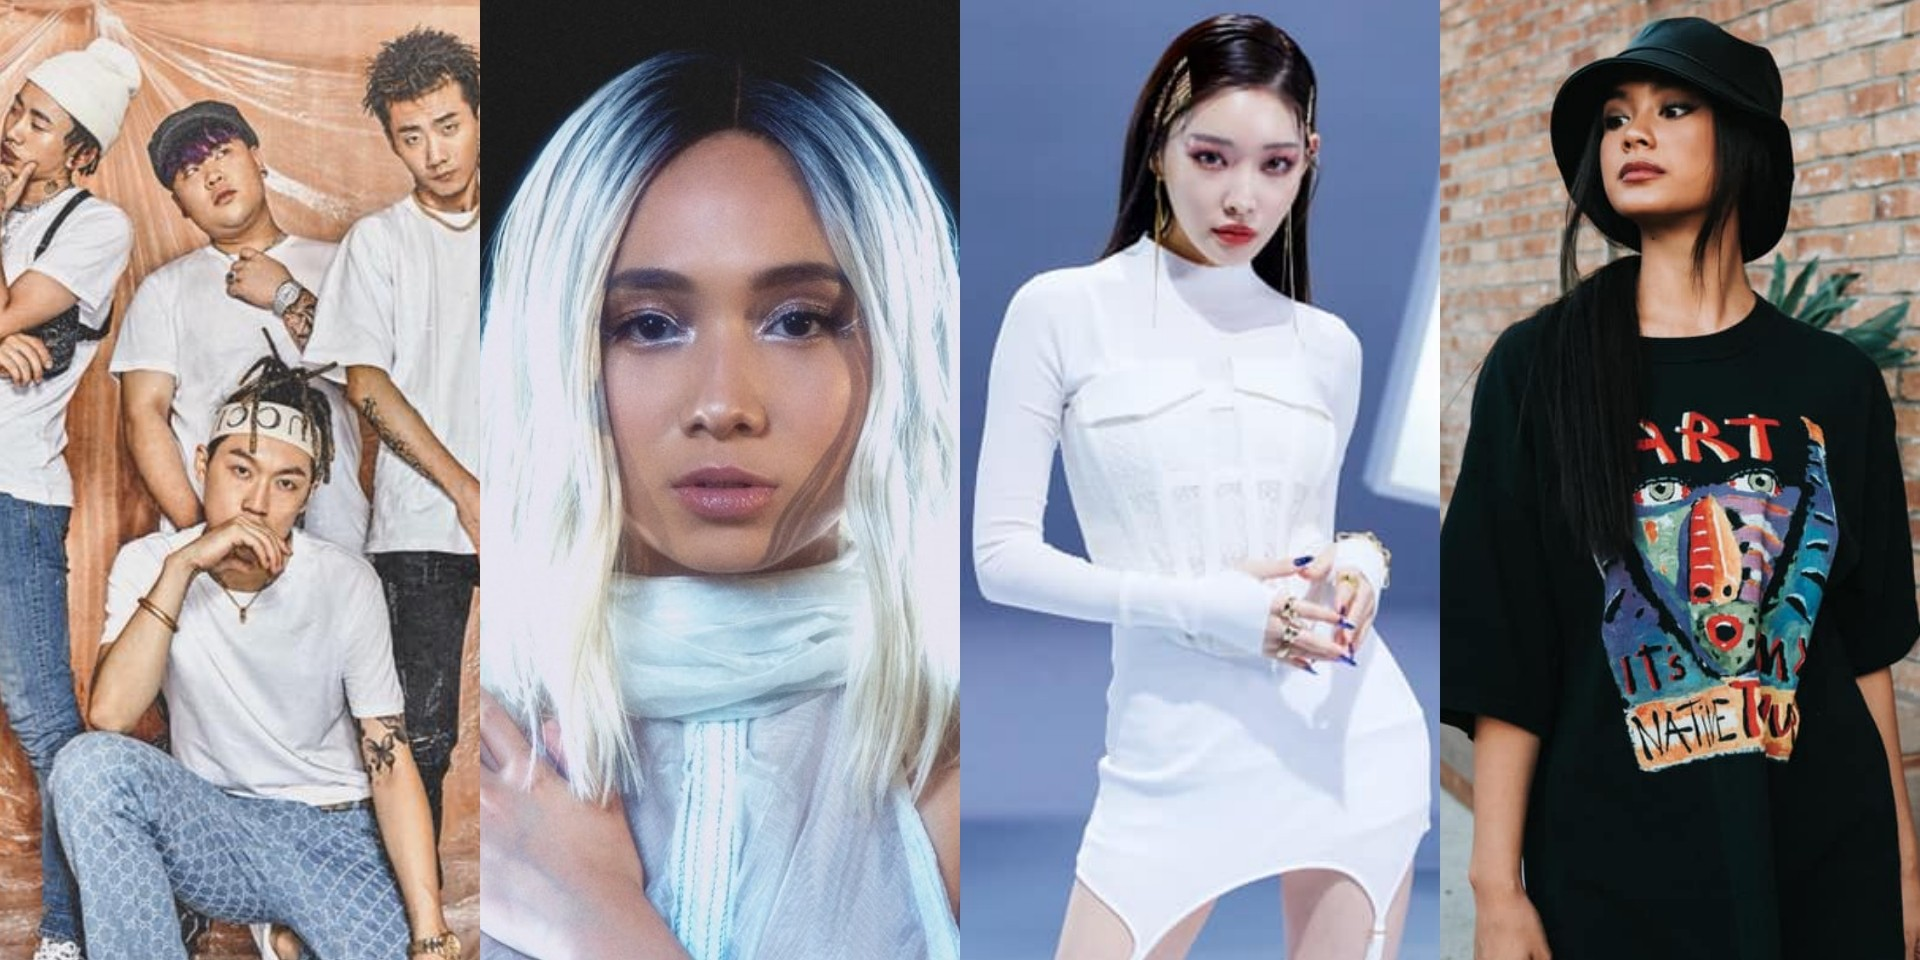 88rising returns with ASIA RISING: Summer Edition on TikTok, featuring Higher Brothers, NIKI, Chung Ha, Ylona Garcia, and more